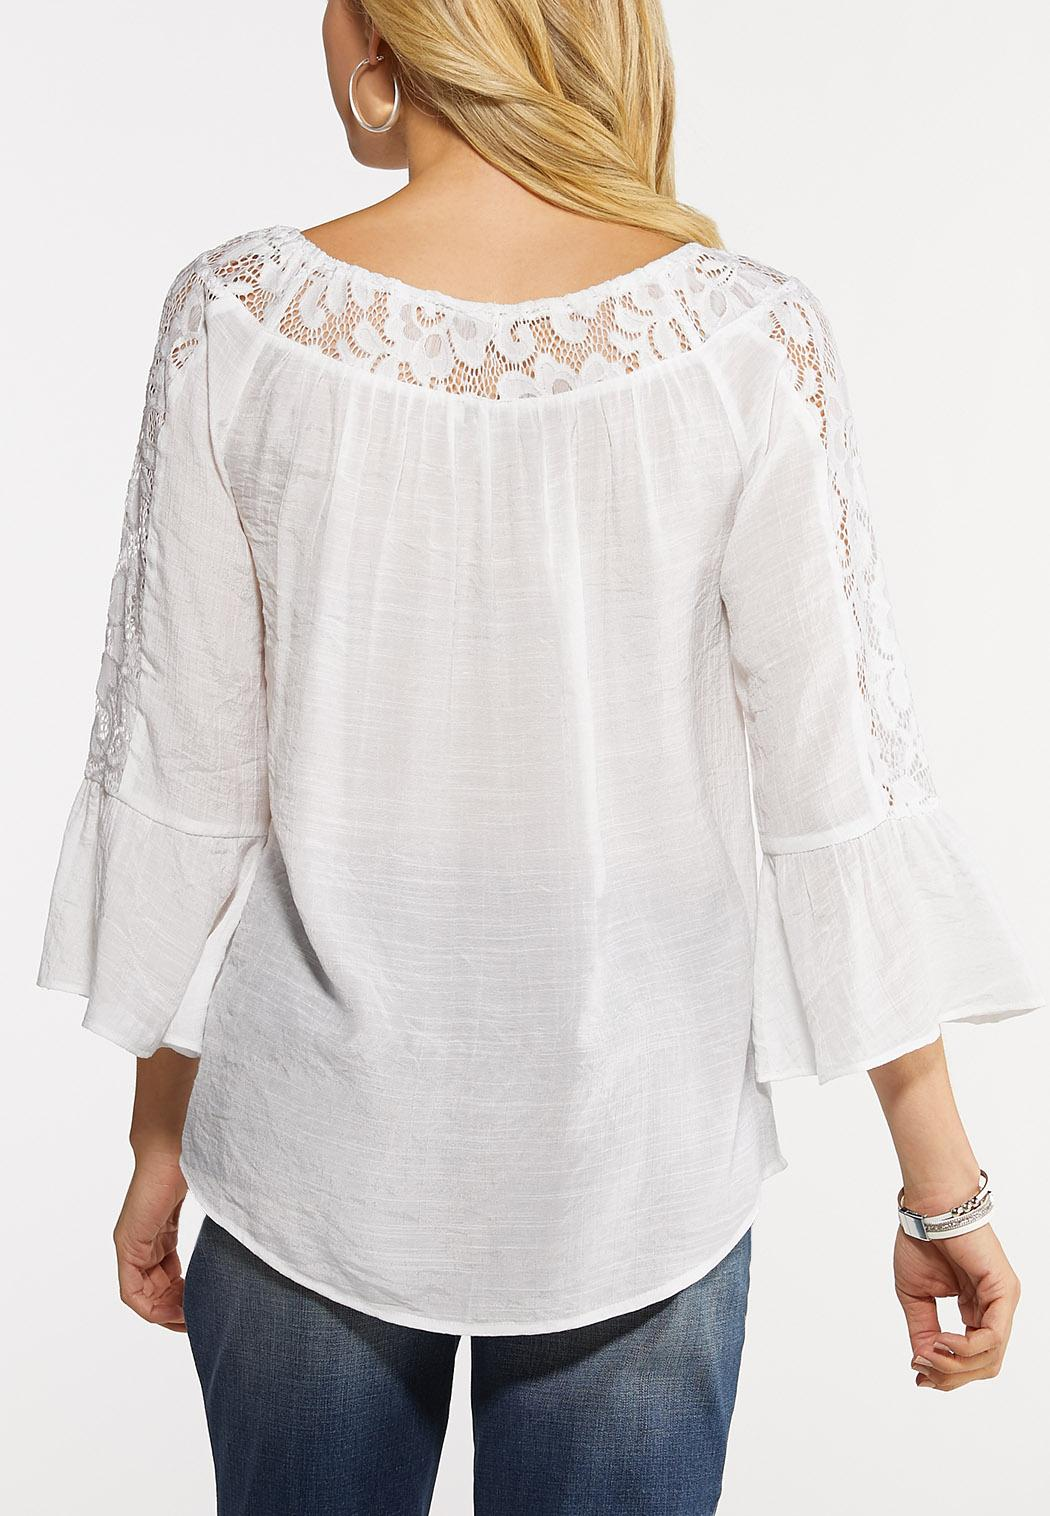 Plus Size Lacy White Crepe Top (Item #44161623)